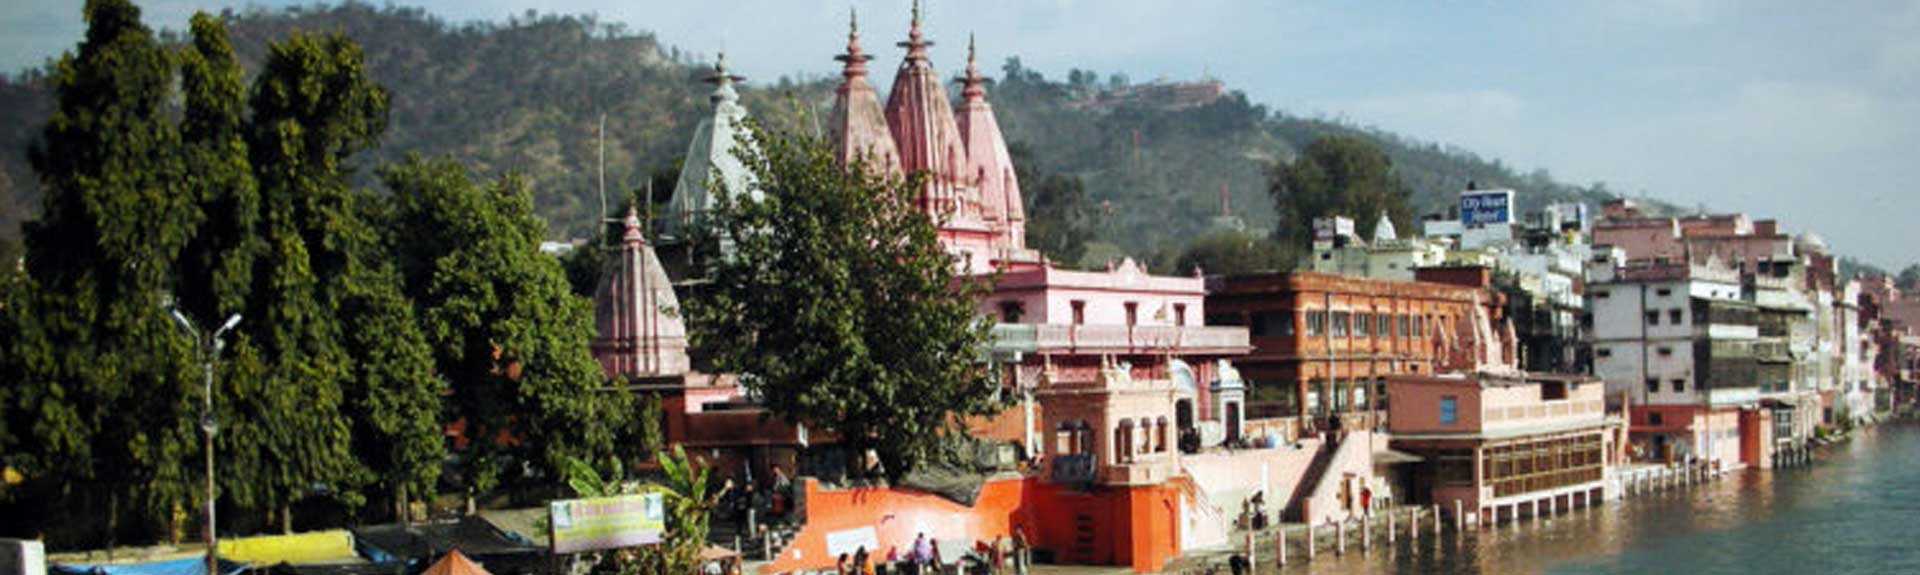 Char Dham Tour Operators in Haridwar